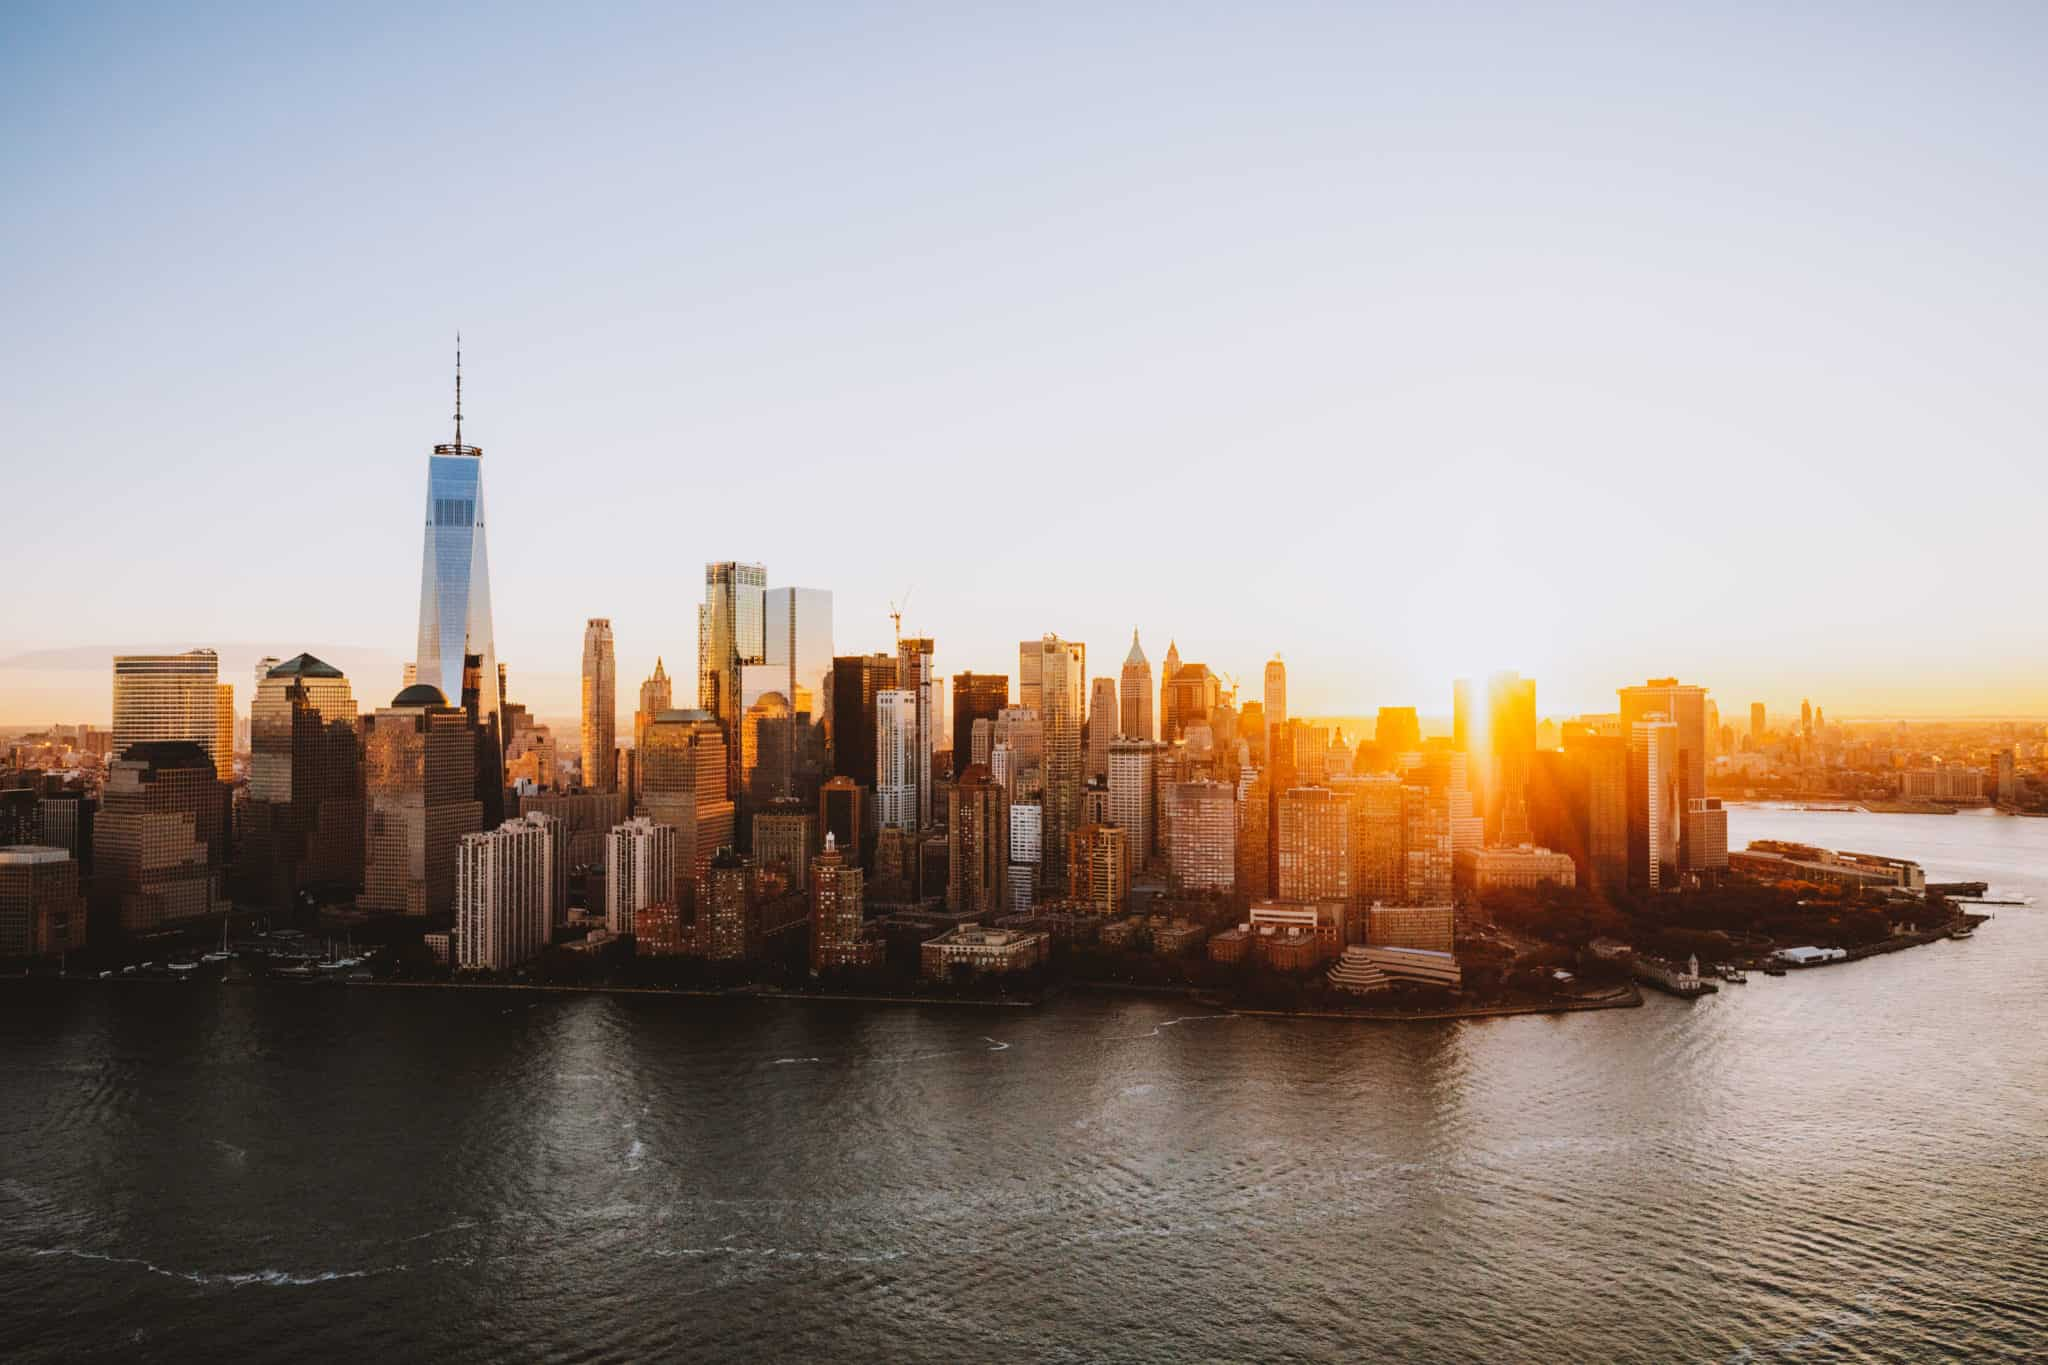 Sunrise over Manhattan Skyline - aerial photography